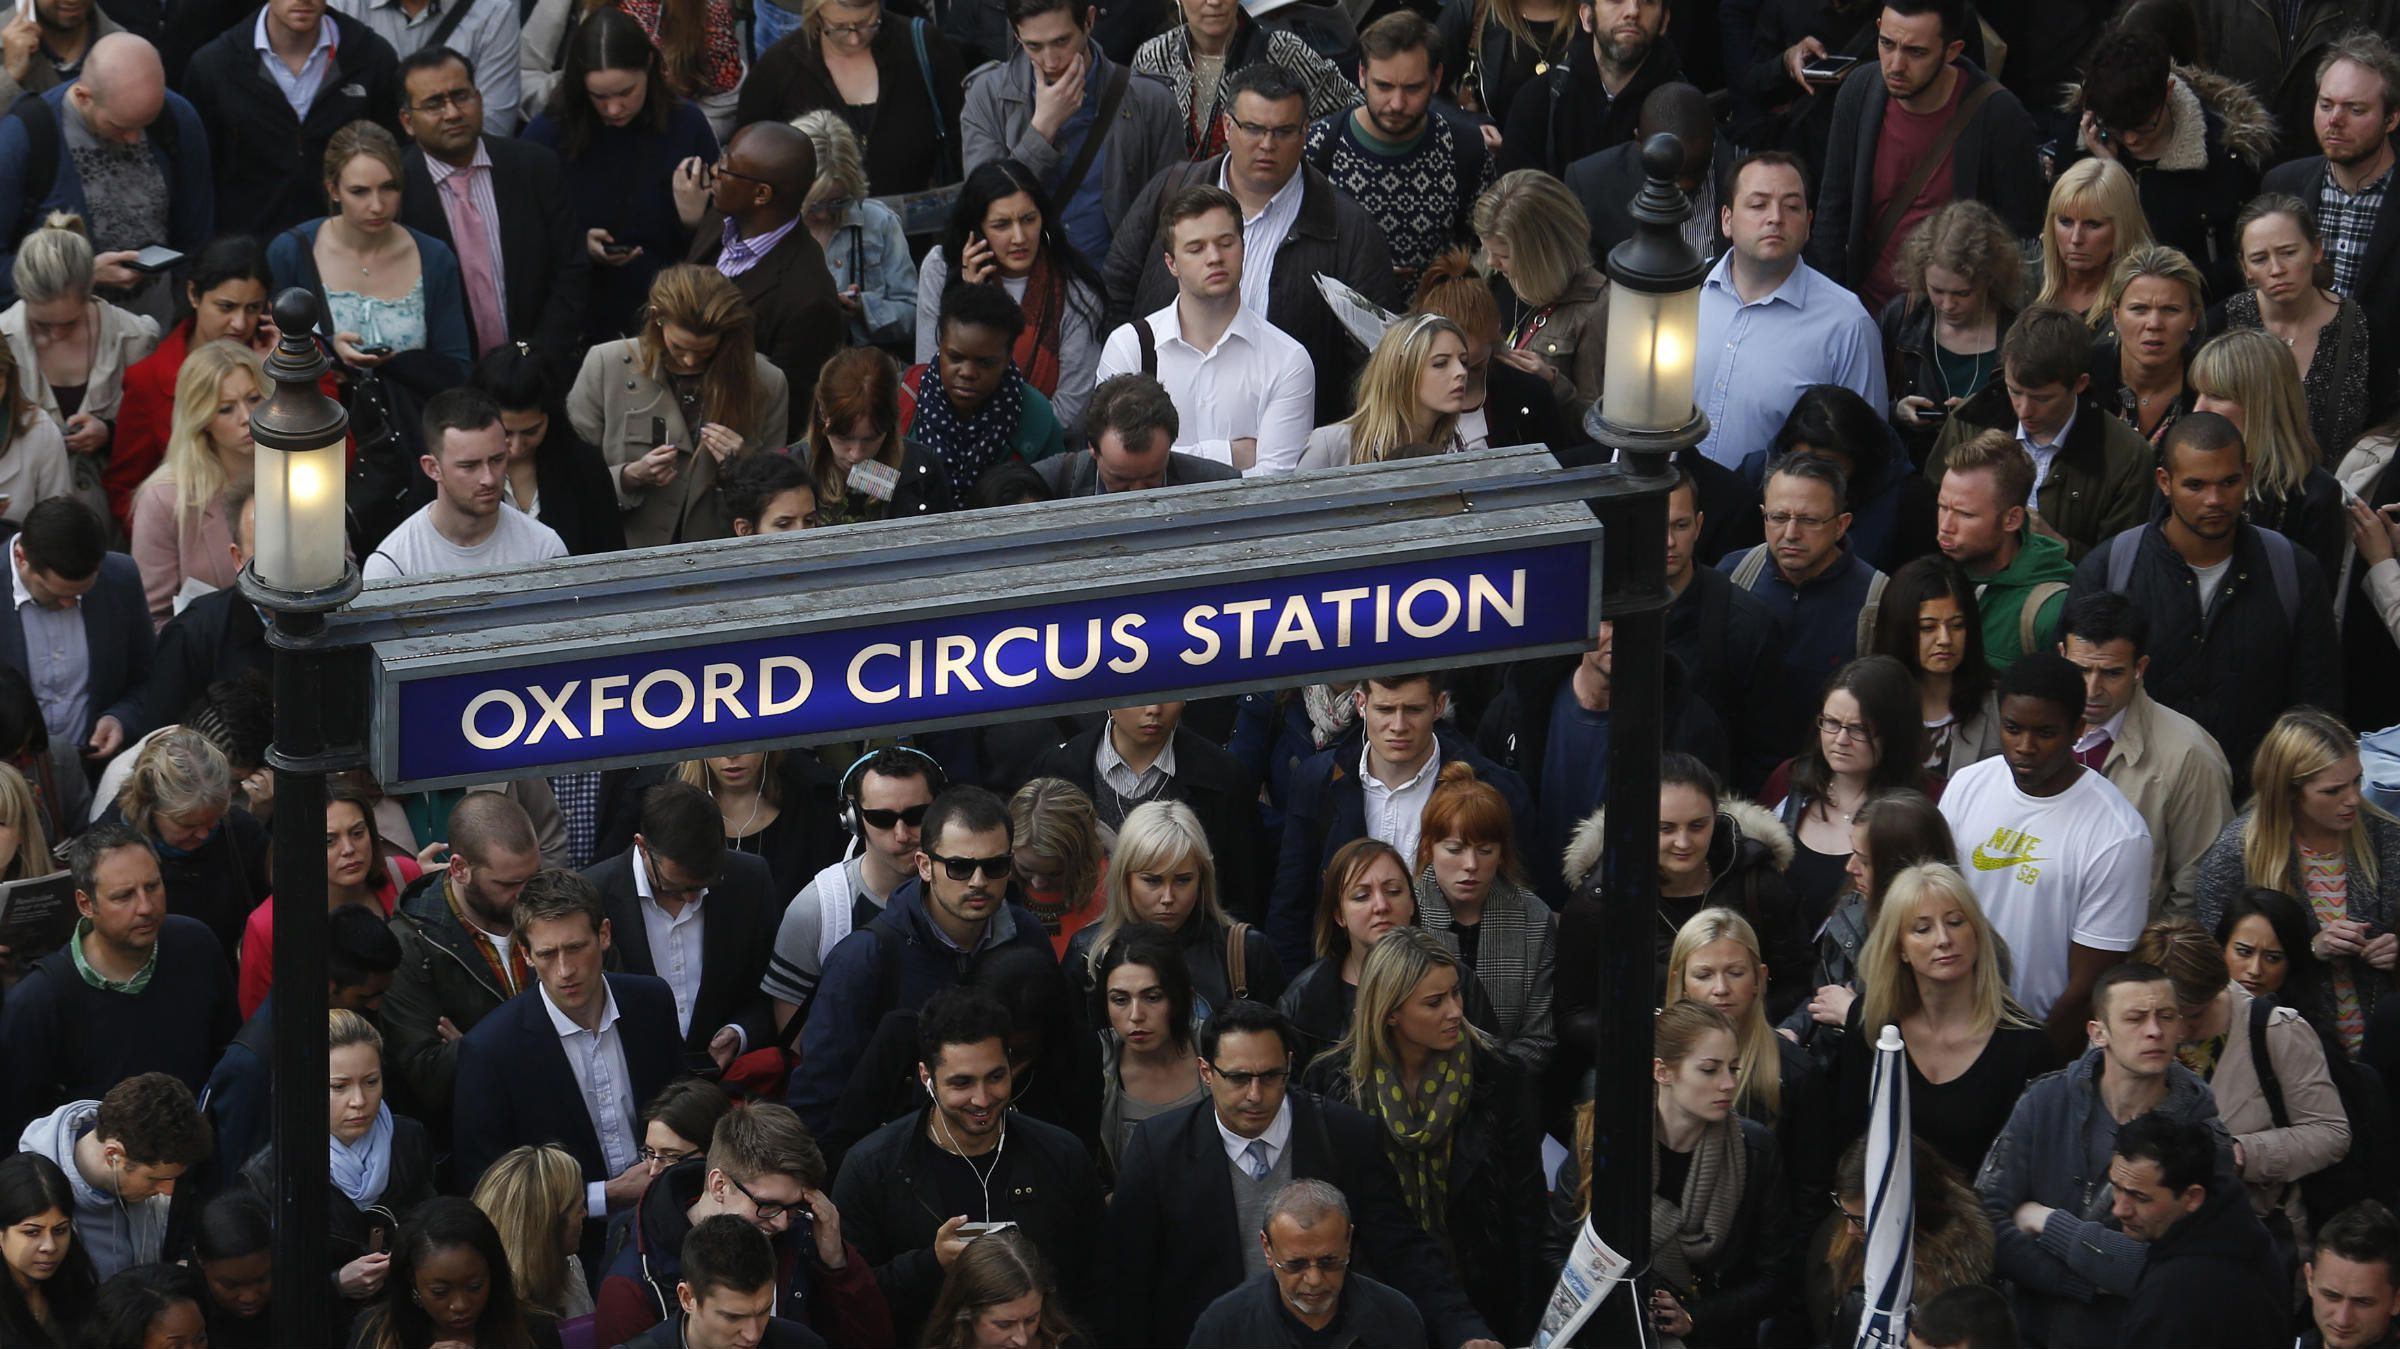 Commuters and shoppers queue for access to Oxford Circus underground station, one of the open tube stations, during strikes in London April 29, 2014. Millions of commuters faced transport chaos on Tuesday after eleventh-hour talks failed to avert a two-day strike on the London Underground train network over plans to cut jobs and close ticket offices. REUTERS/Luke MacGregor (BRITAIN - Tags: TRANSPORT BUSINESS EMPLOYMENT POLITICS SOCIETY)